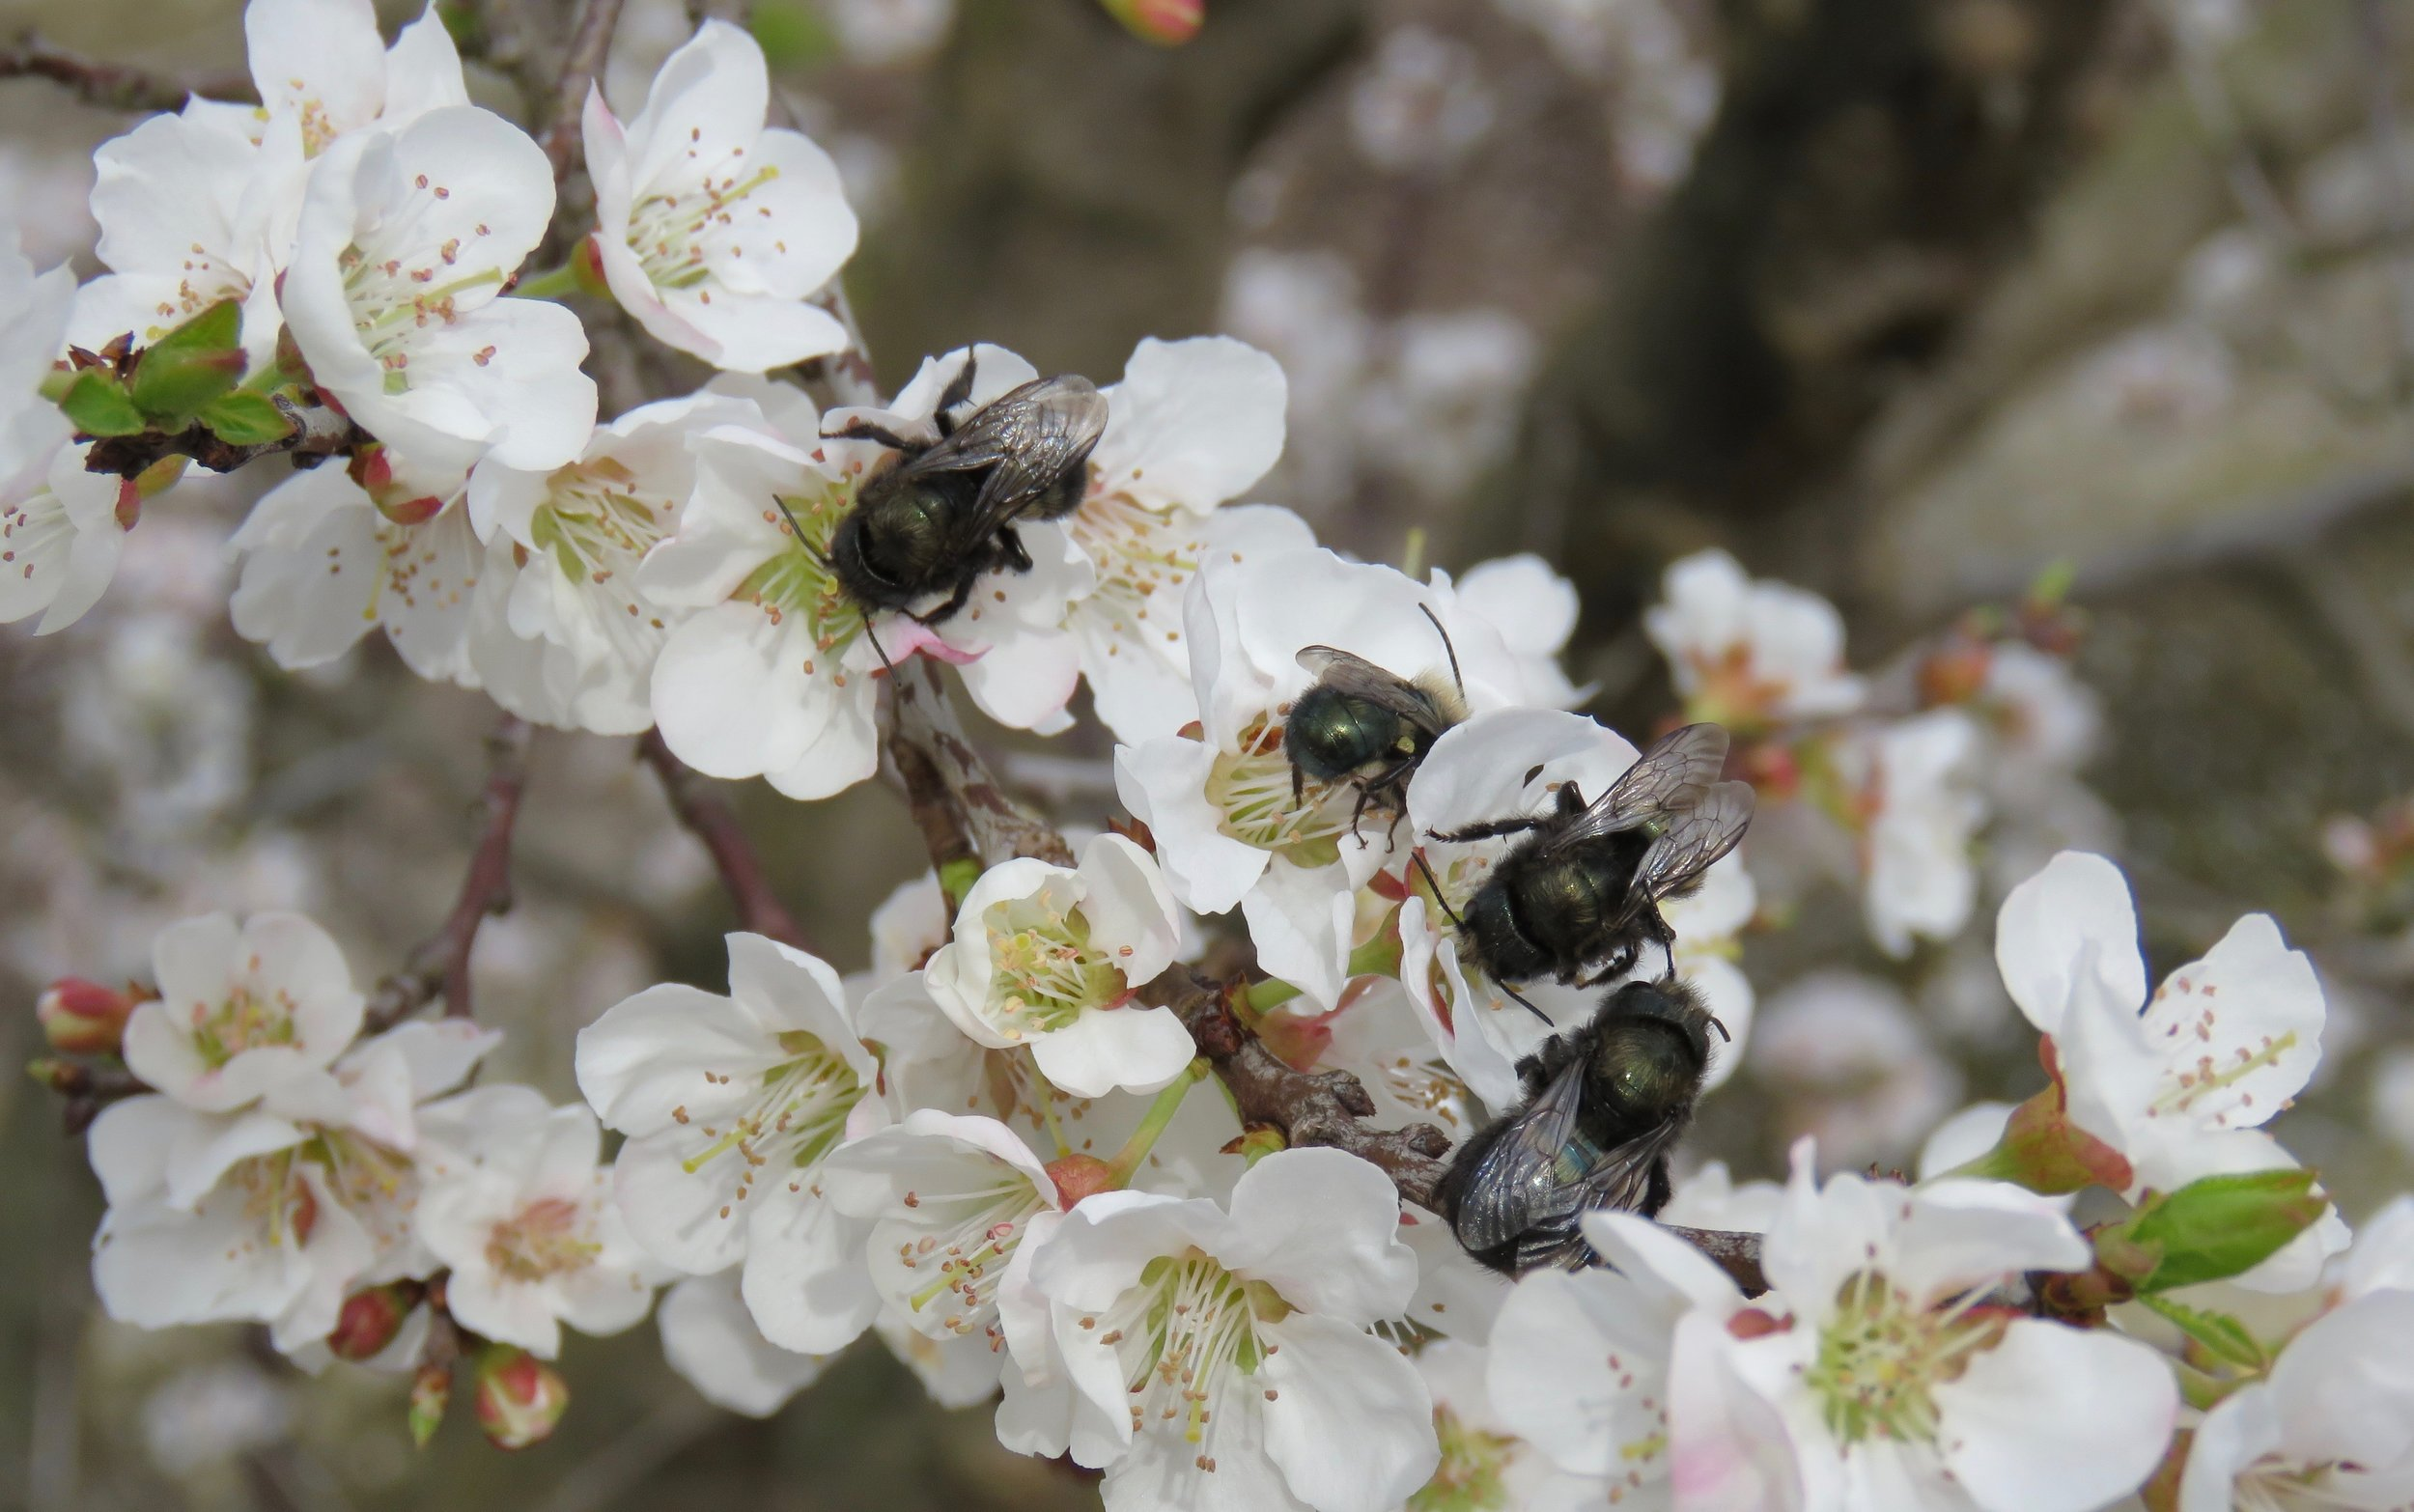 Mason bees gather pollen on almond flowers.